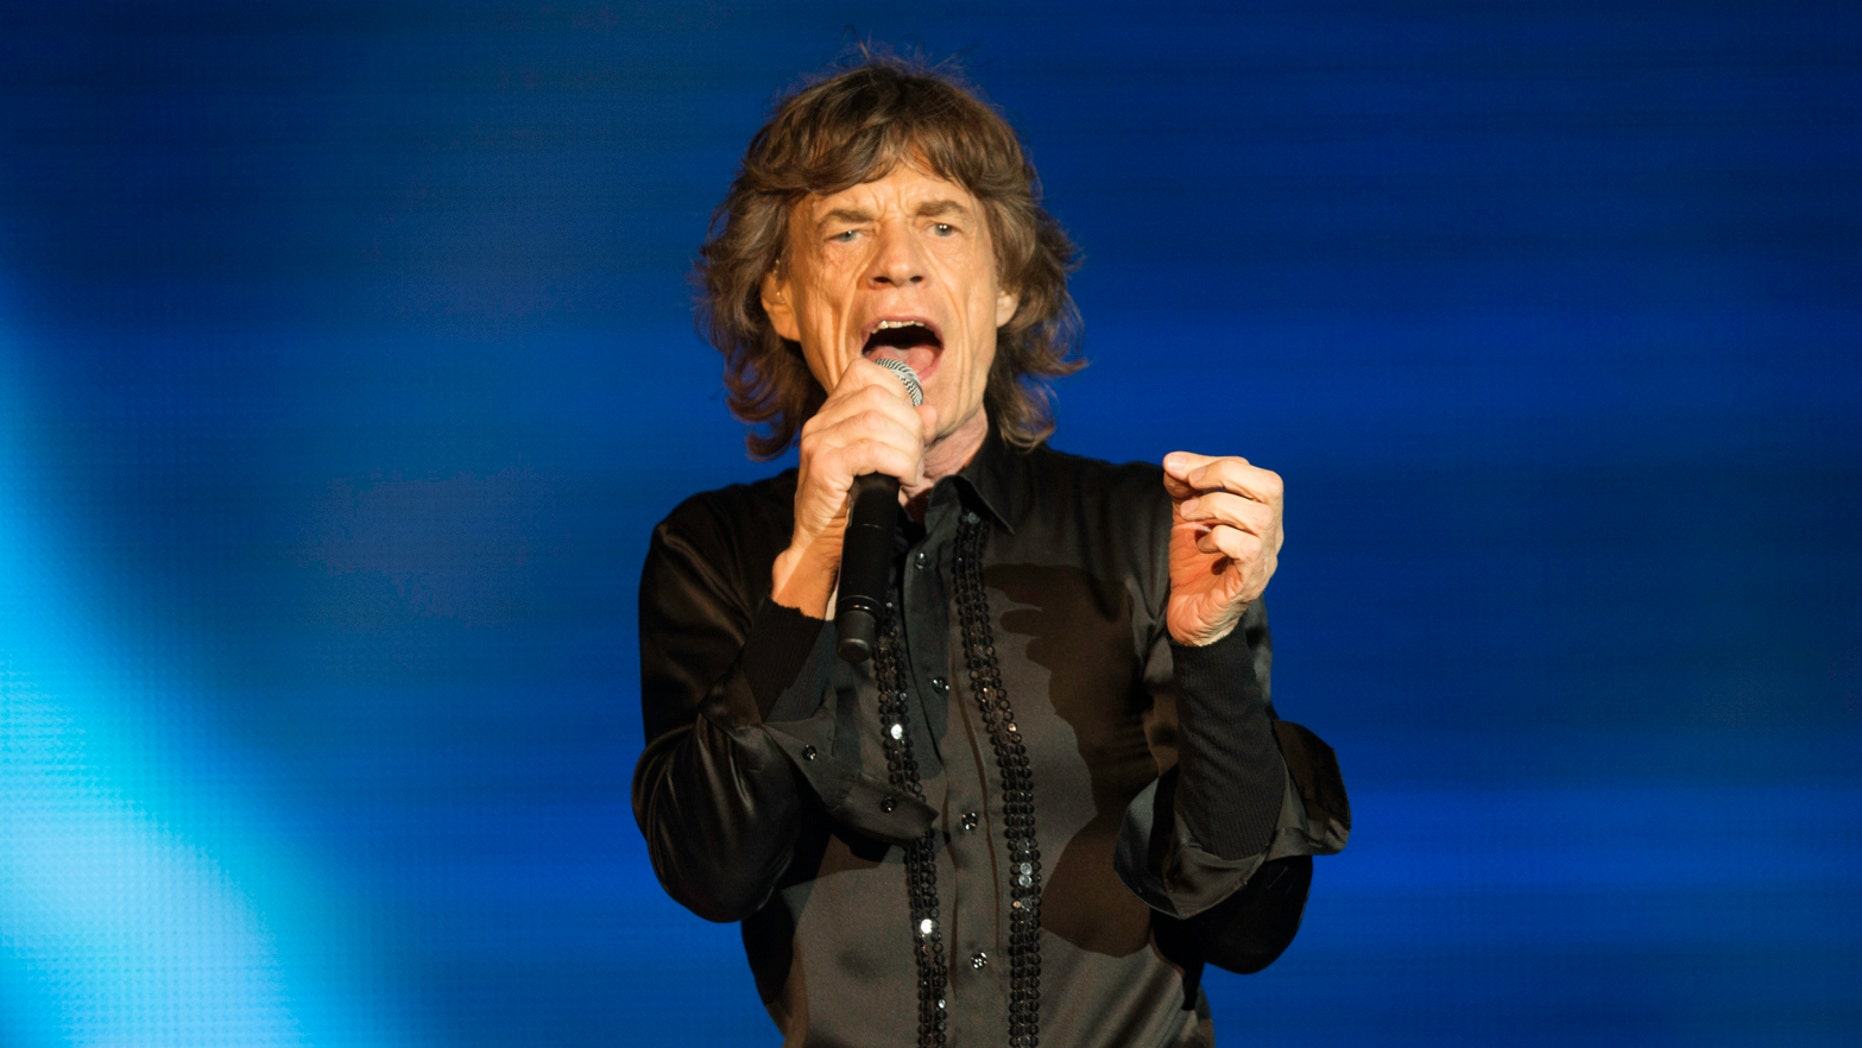 ABU DHABI, UNITED ARAB EMIRATES - FEBRUARY 21:  Mick Jagger of The Rolling Stones performs at du Arena, Yas Island on February 21, 2014 in Abu Dhabi, United Arab Emirates.  (Photo by Neville Hopwood/Getty Images)